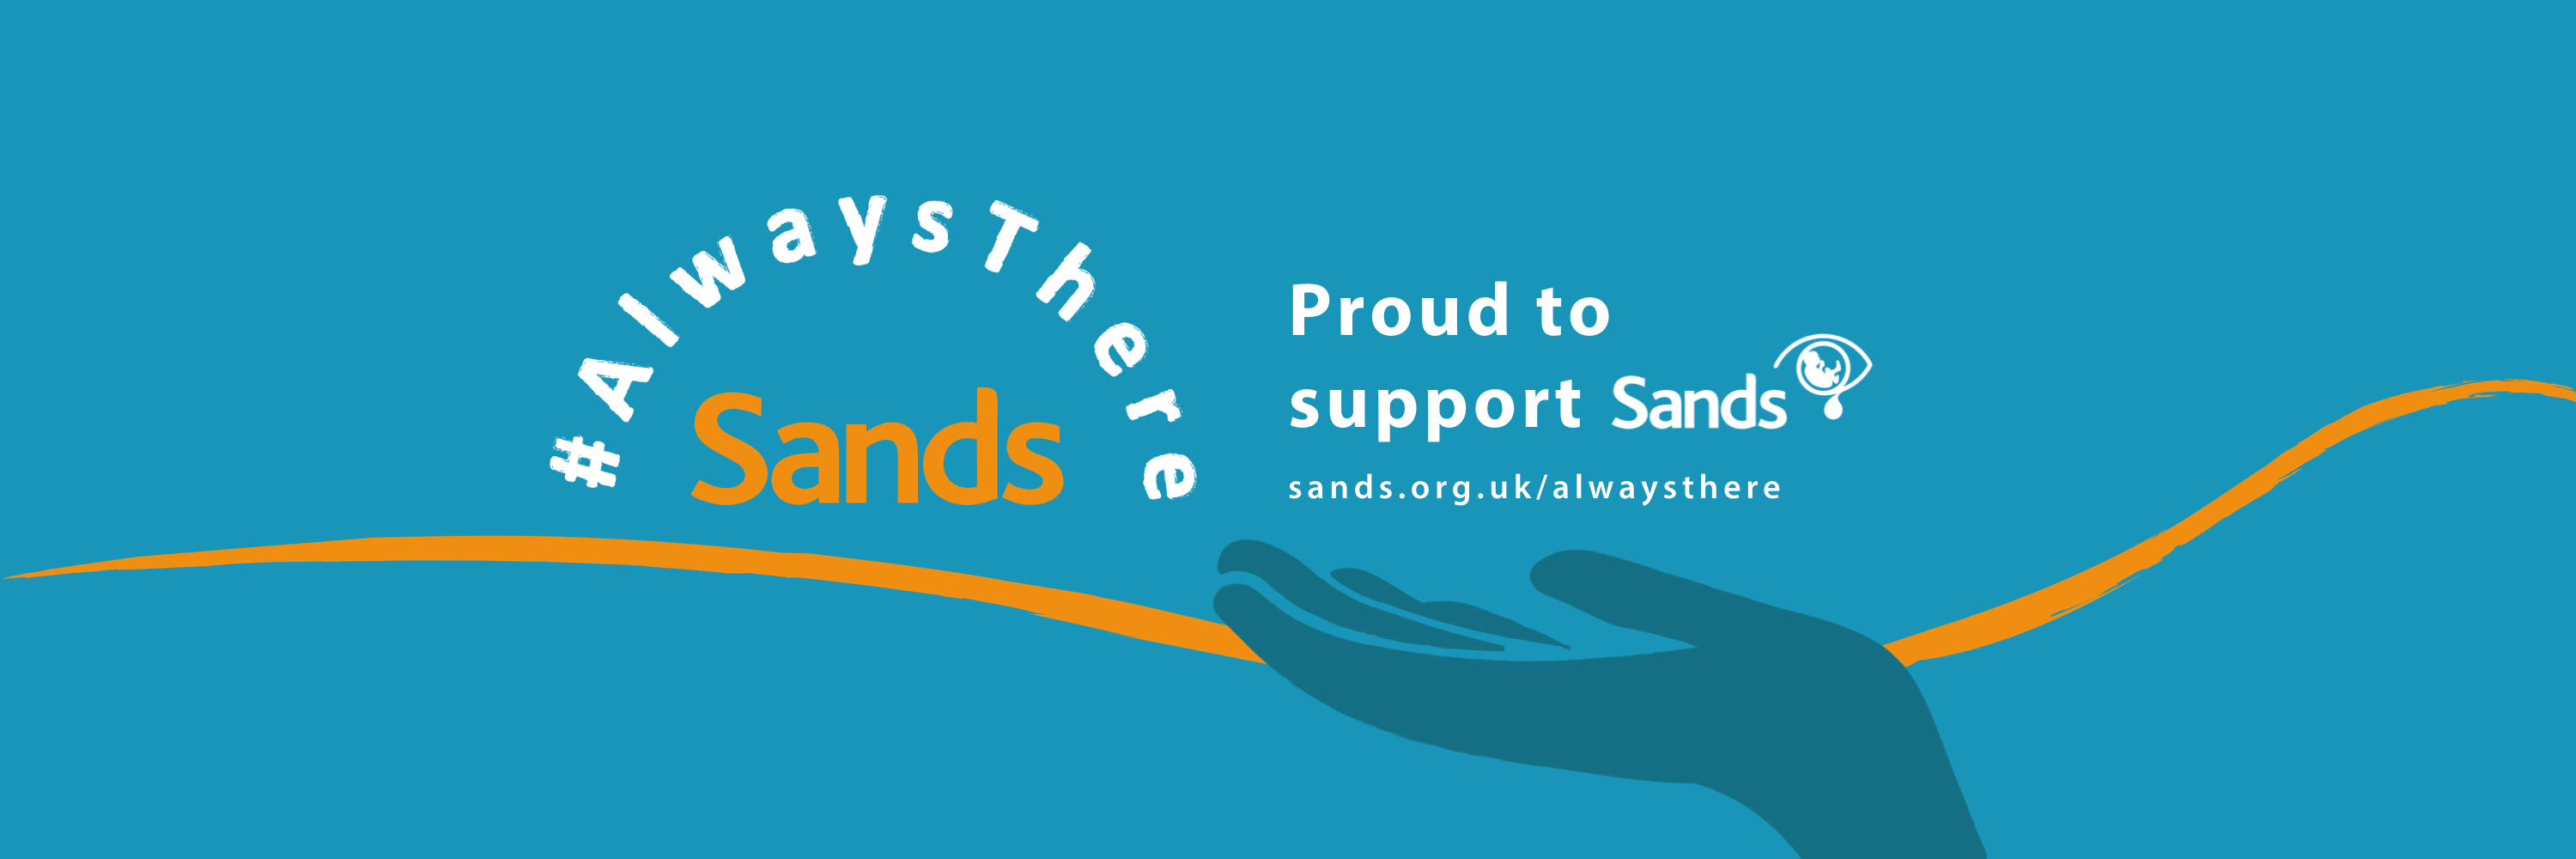 Sands Awareness Month Always There campaign twitter banner for supporters